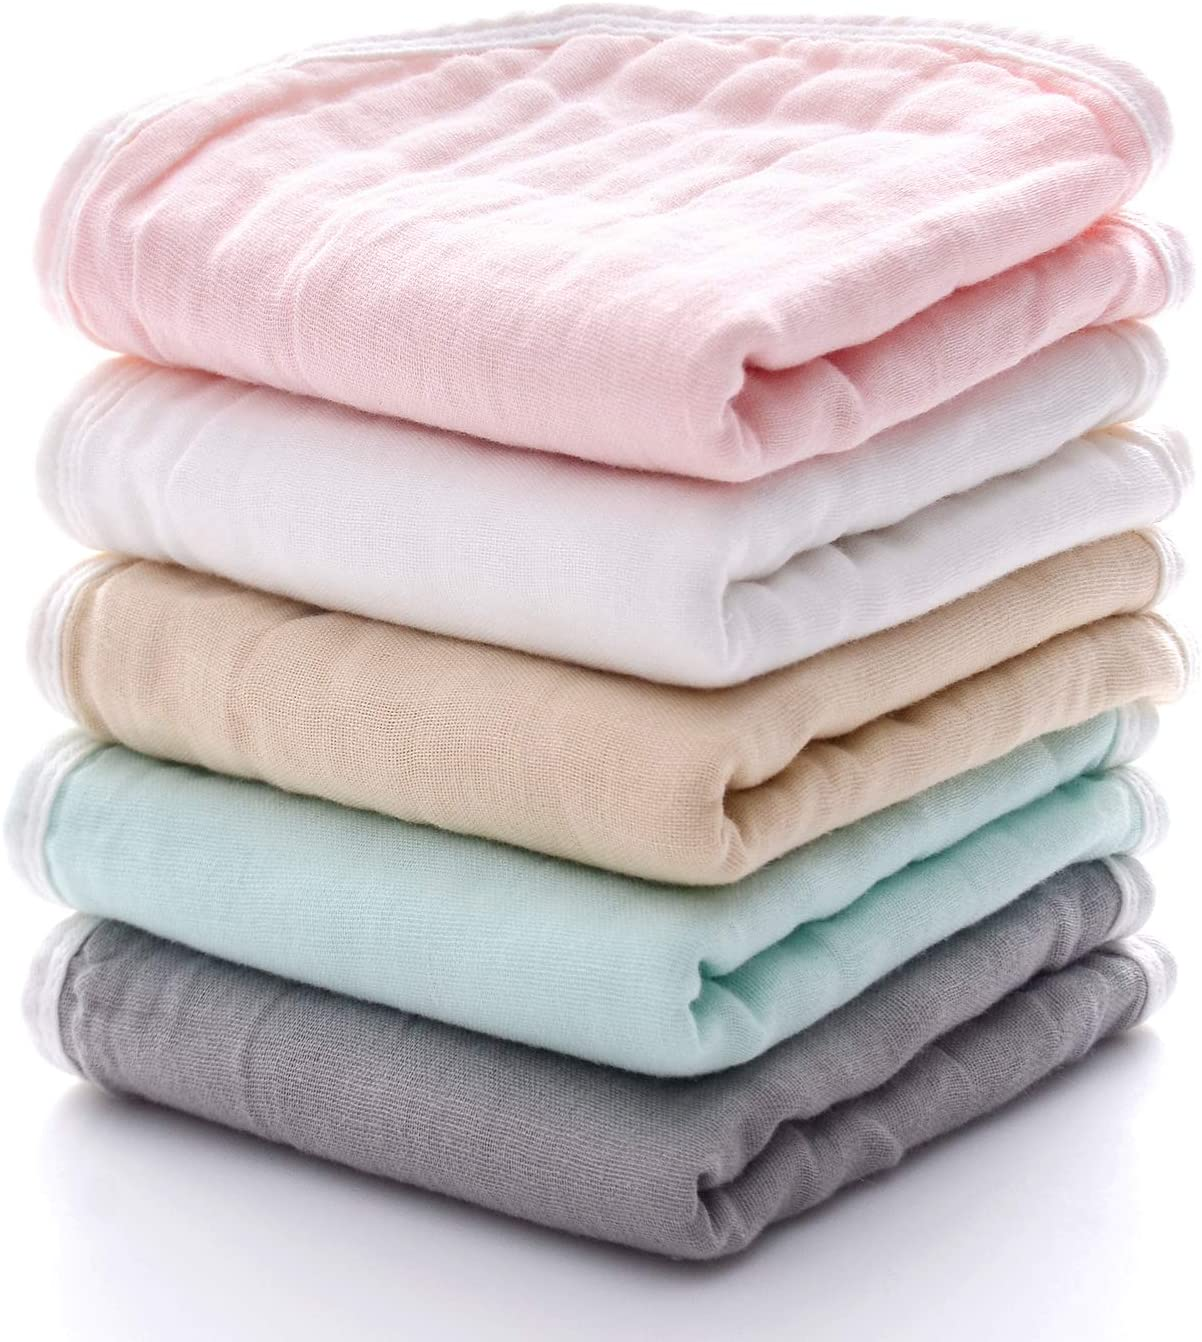 Baby Shower Gift for Boys and Girls Baby Burp Cloth Sets for Unisex MUKIN Muslin Burp Cloths Perfect for Newborn Baby Burping Cloths//Burp Bibs Newborn Burping Rags?5 Pack?Multicolored?